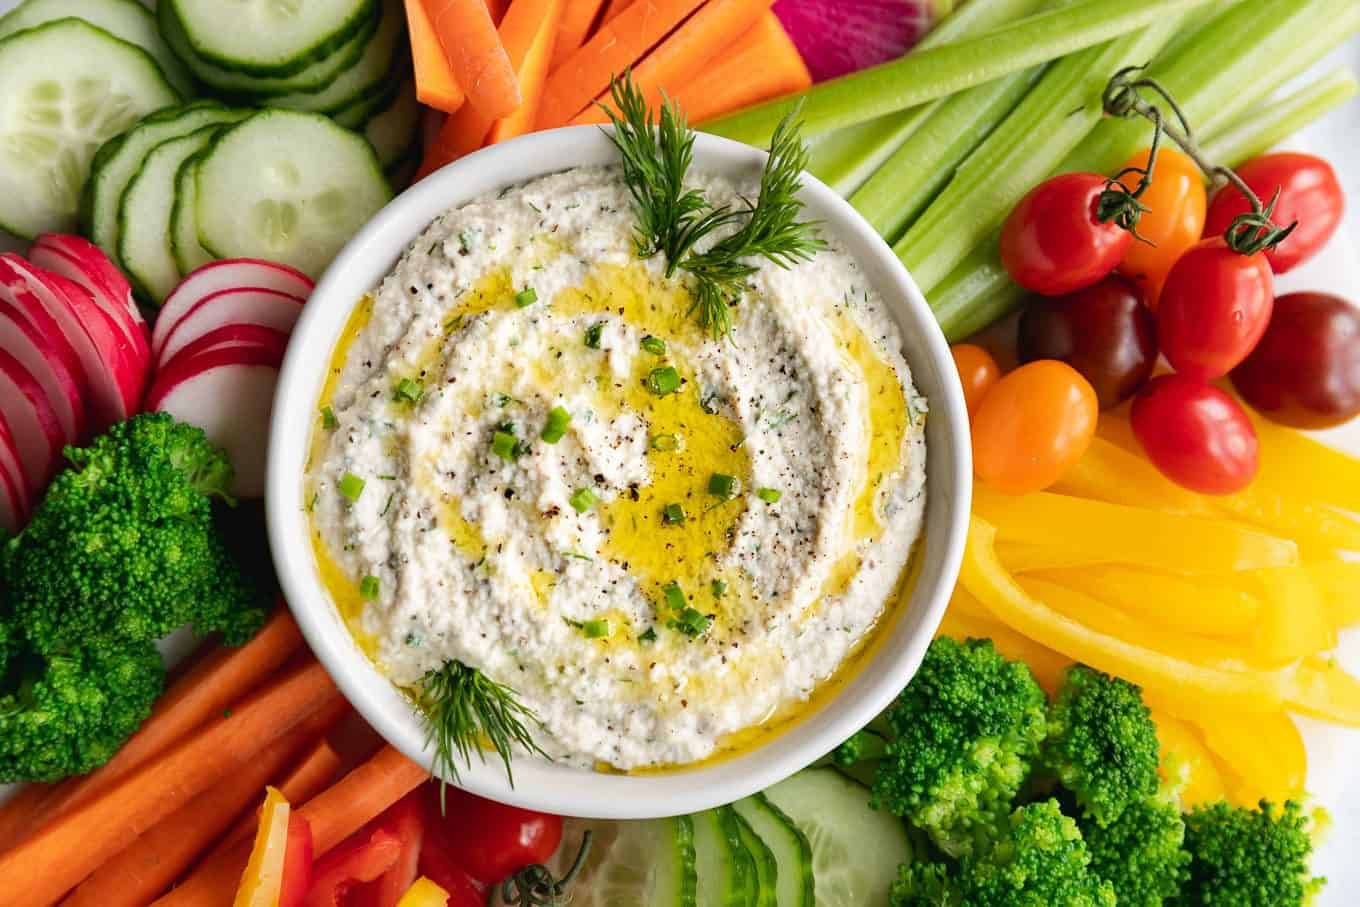 Vegan Cashew Ranch Dip